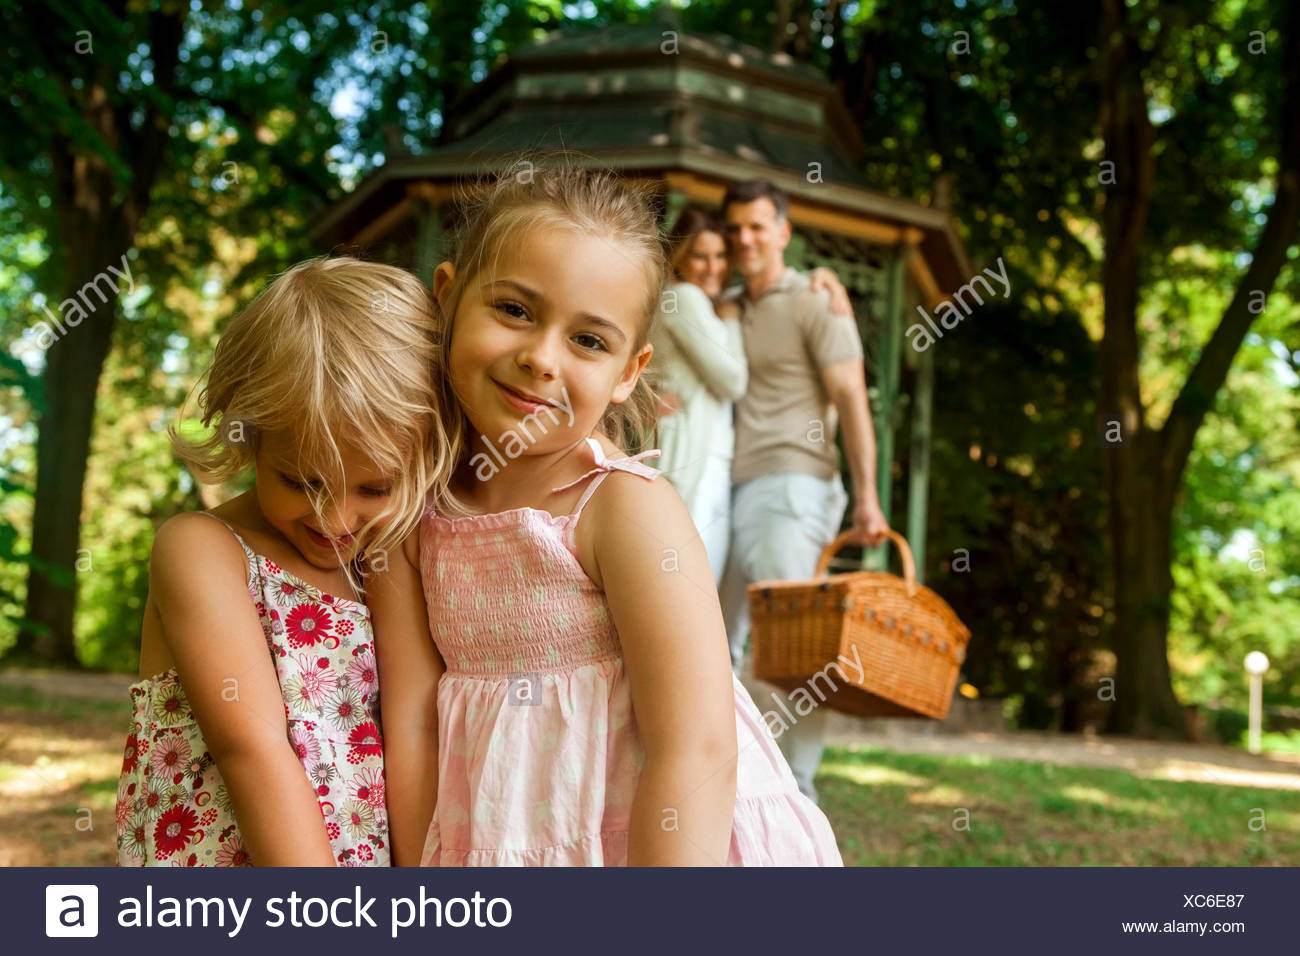 Happy family in park parents carrying picnic basket - Stock Image